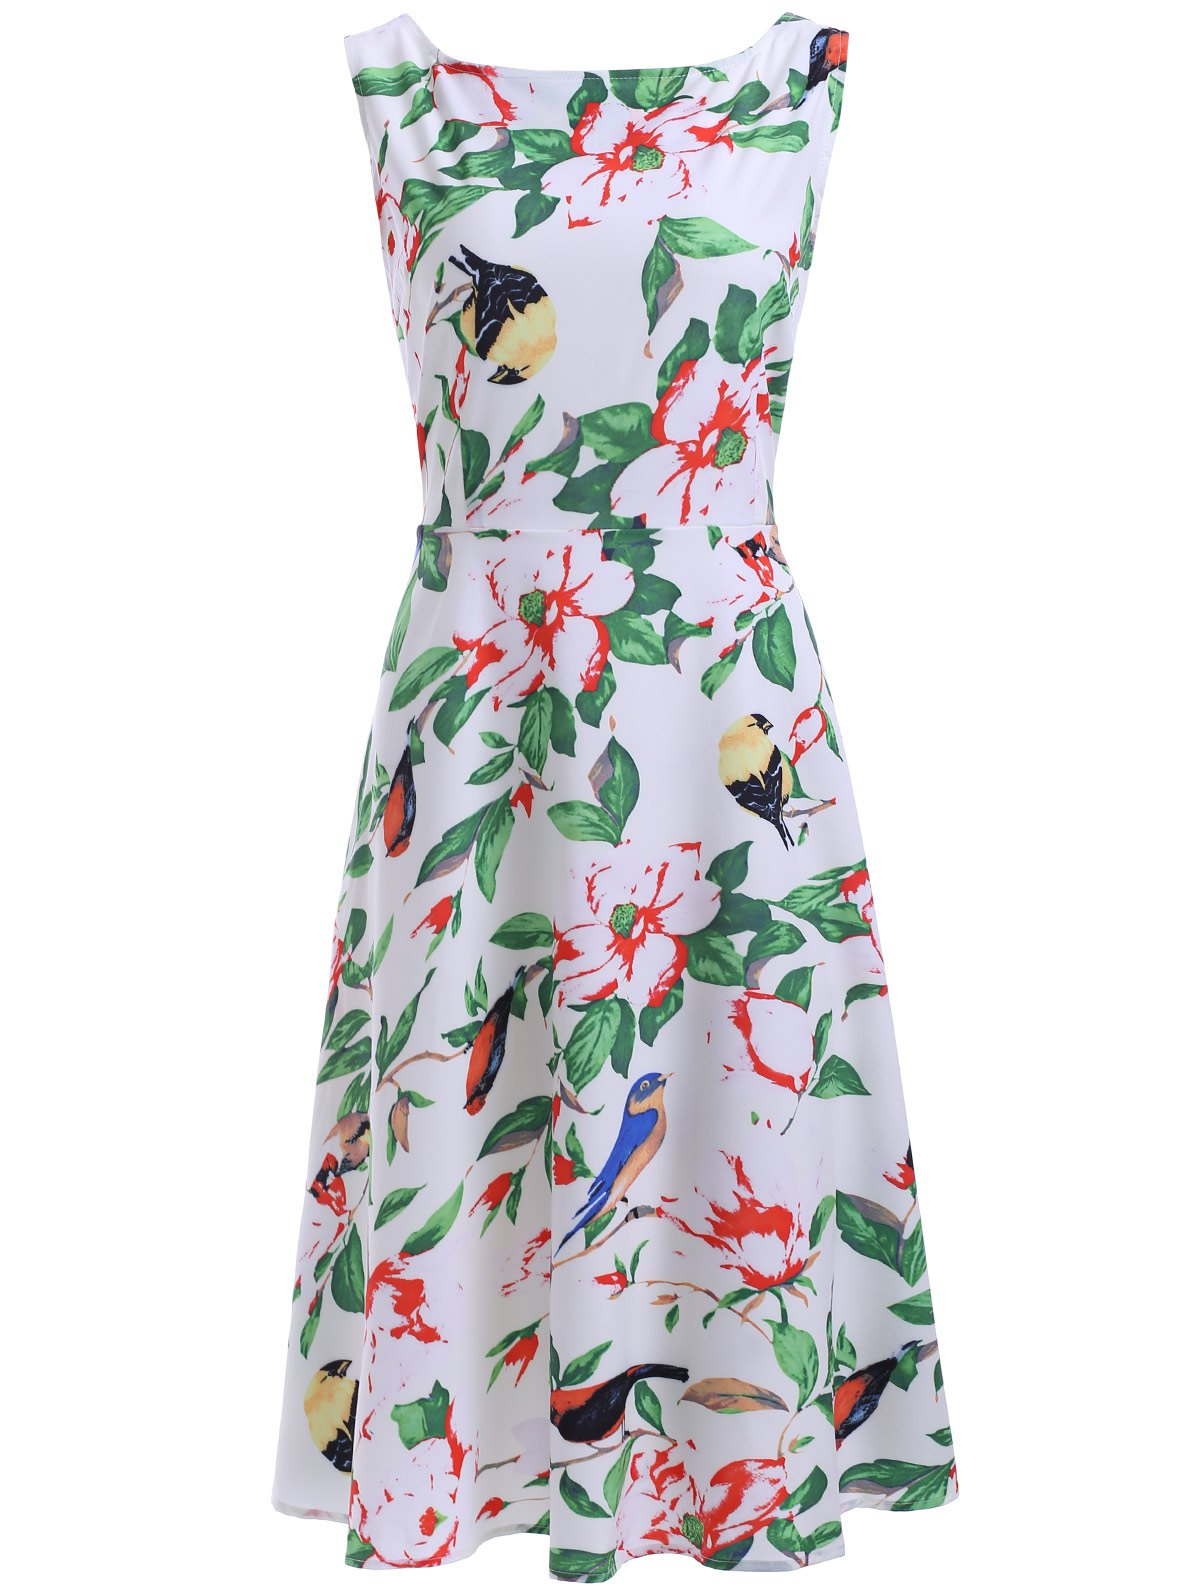 Round Neck Floral Print Sleeveless Dress For Women - COLORMIX XS